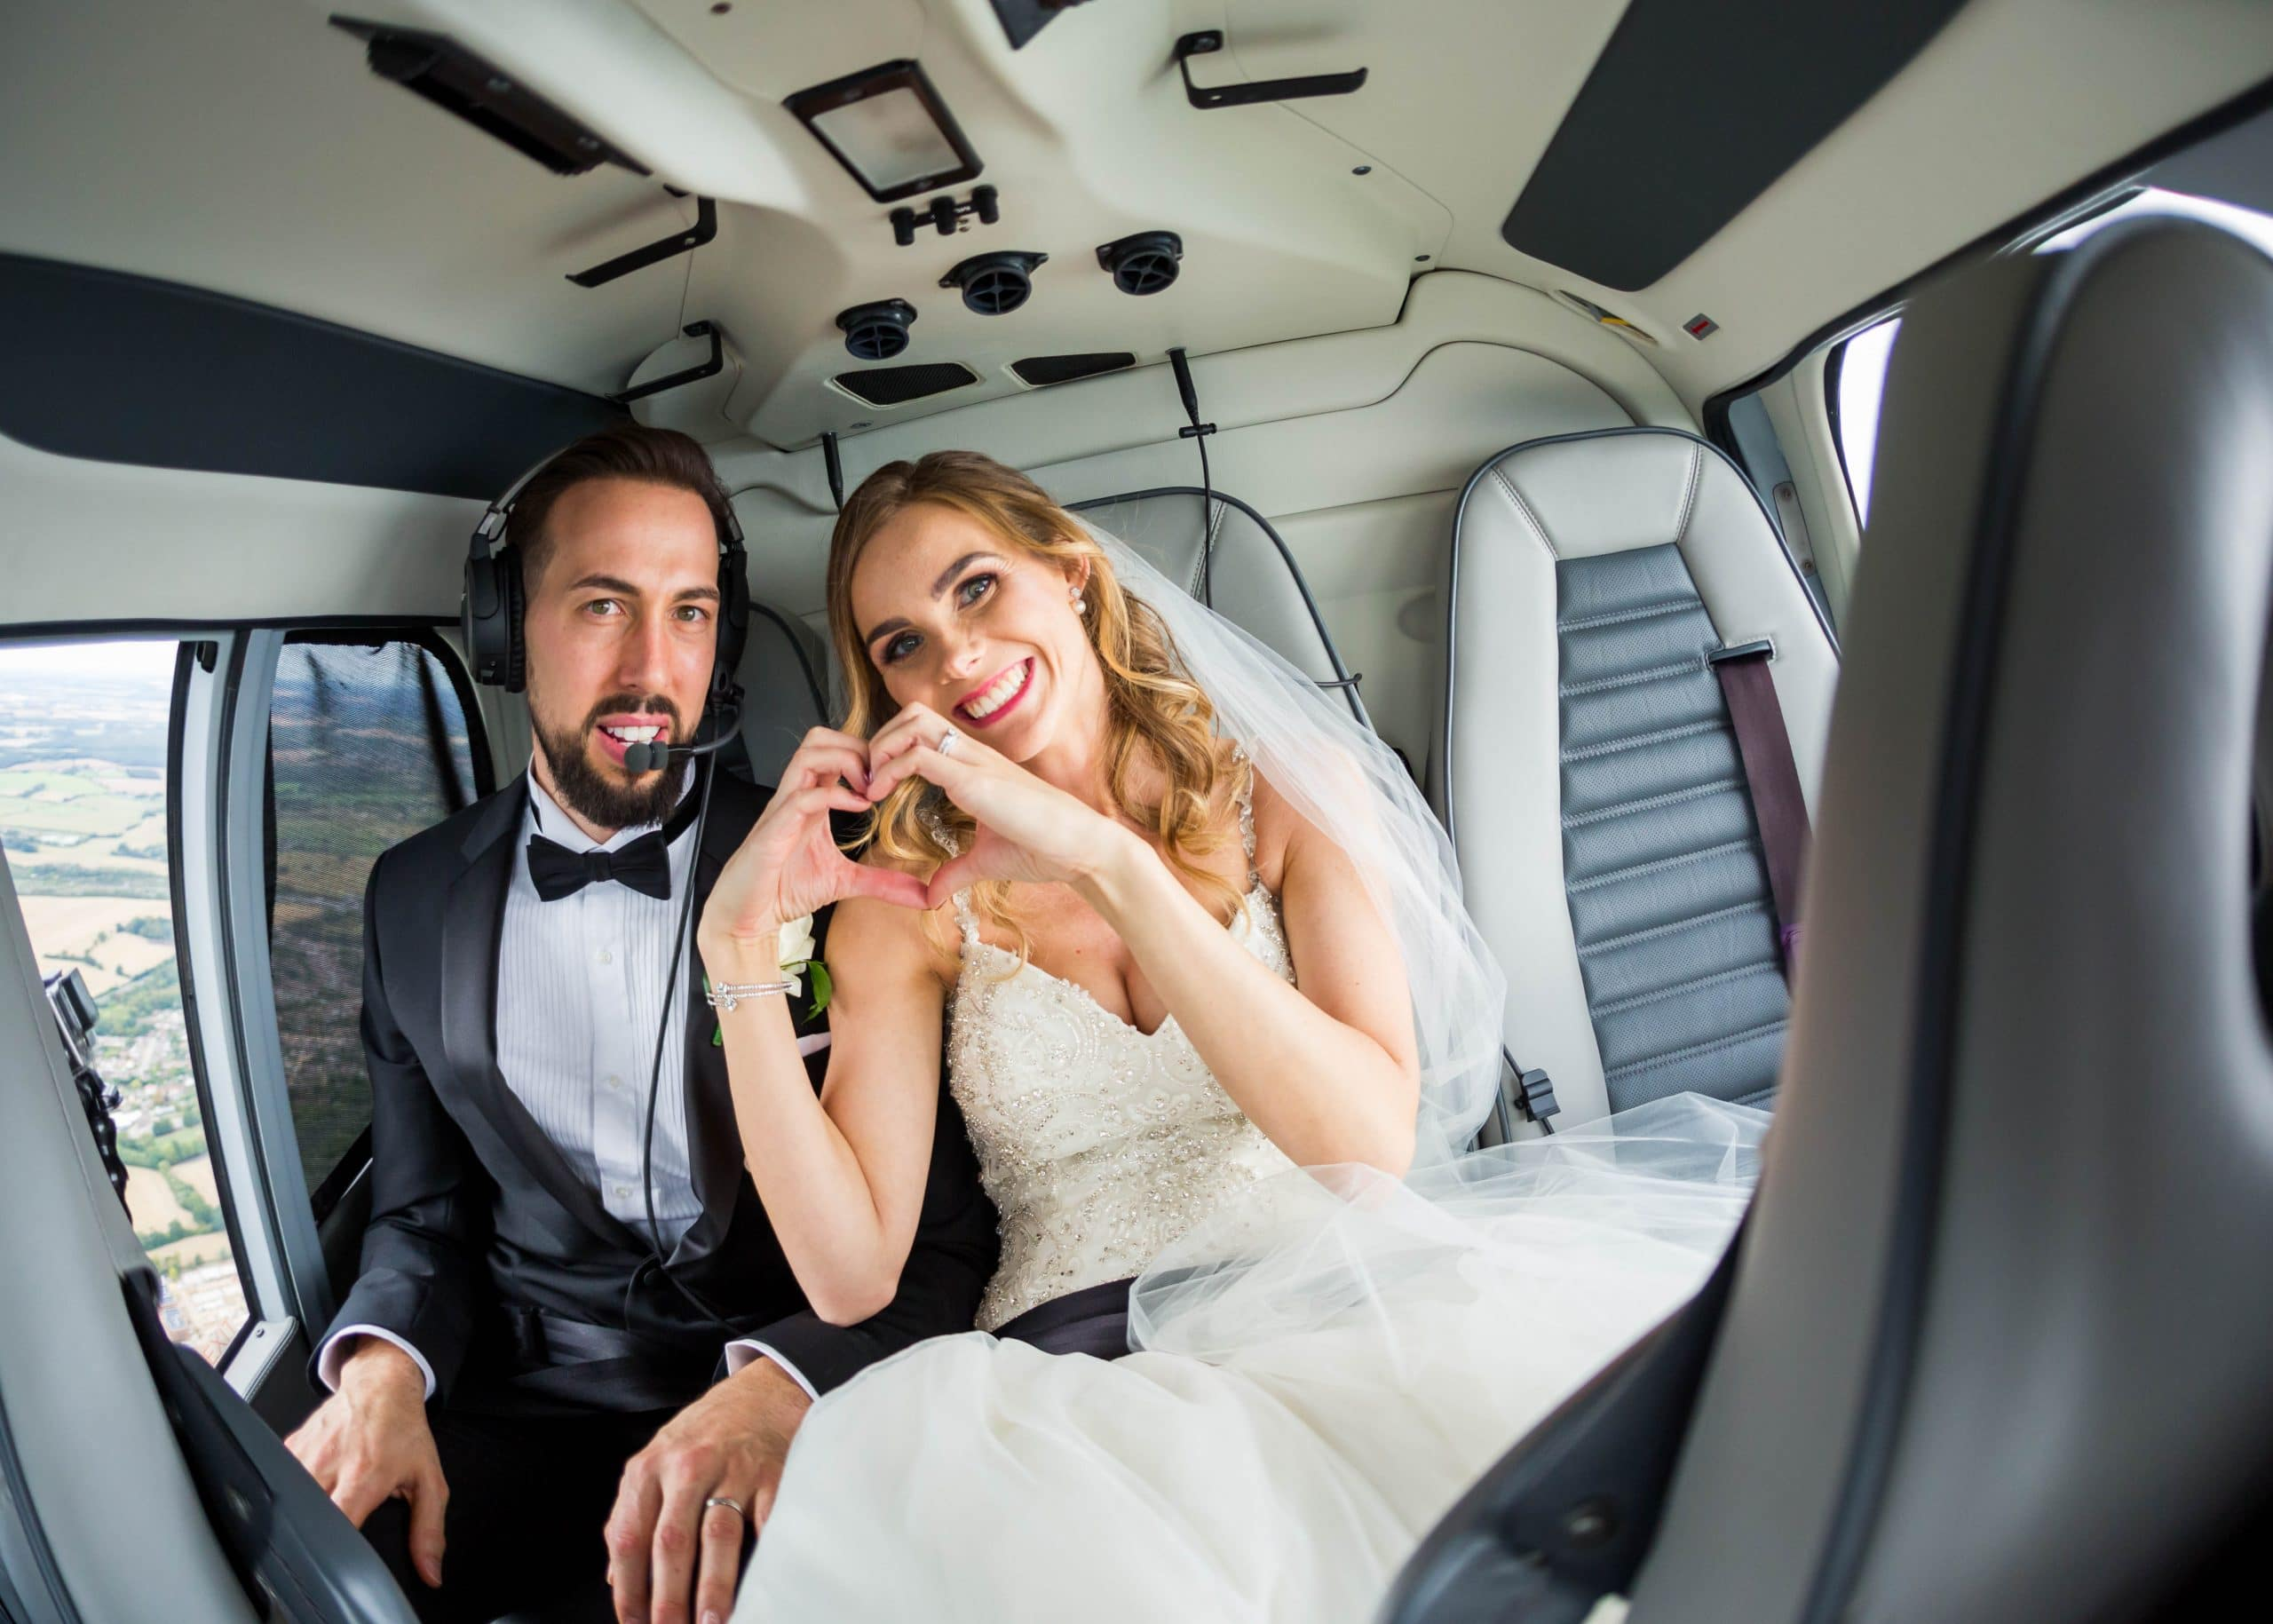 S&L couple in helicopter on classic real wedding day